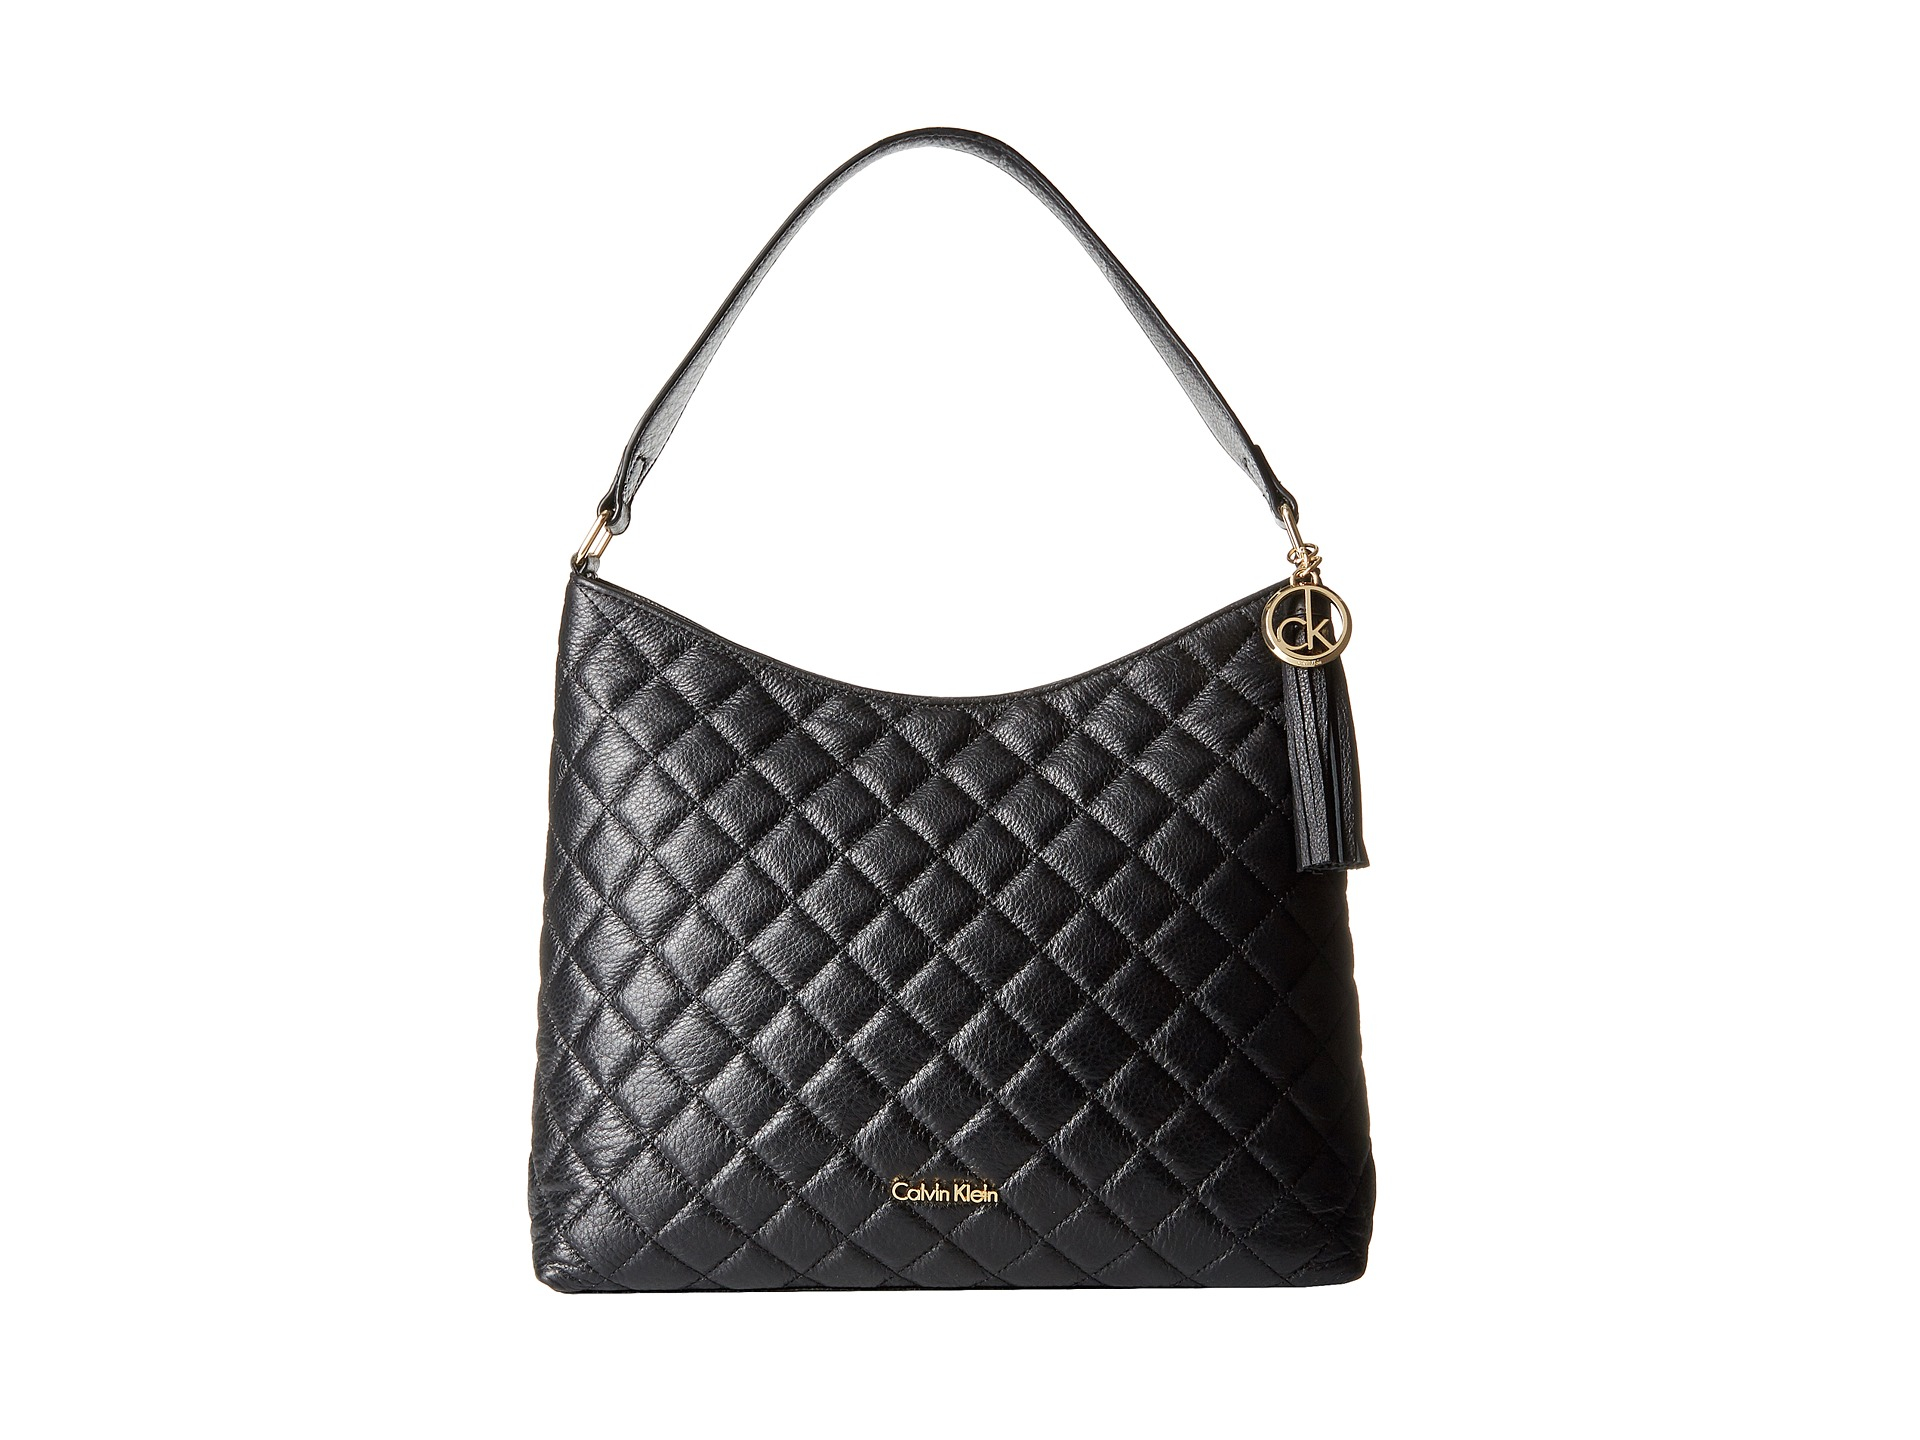 Calvin klein Quilted Pebble Hobo in Black | Lyst : calvin klein quilted purse - Adamdwight.com